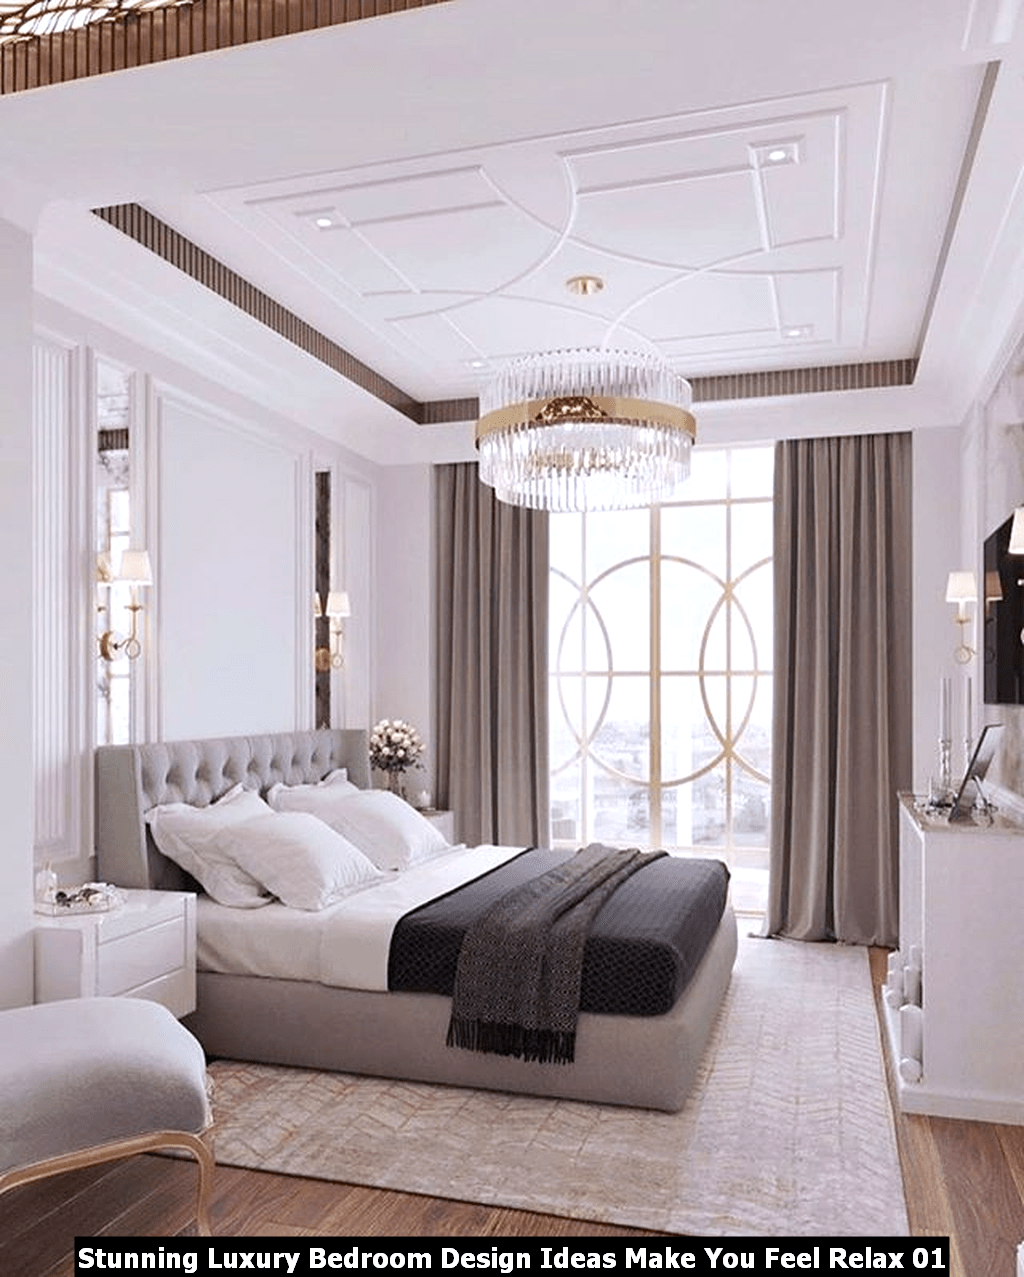 Stunning Luxury Bedroom Design Ideas Make You Feel Relax 01